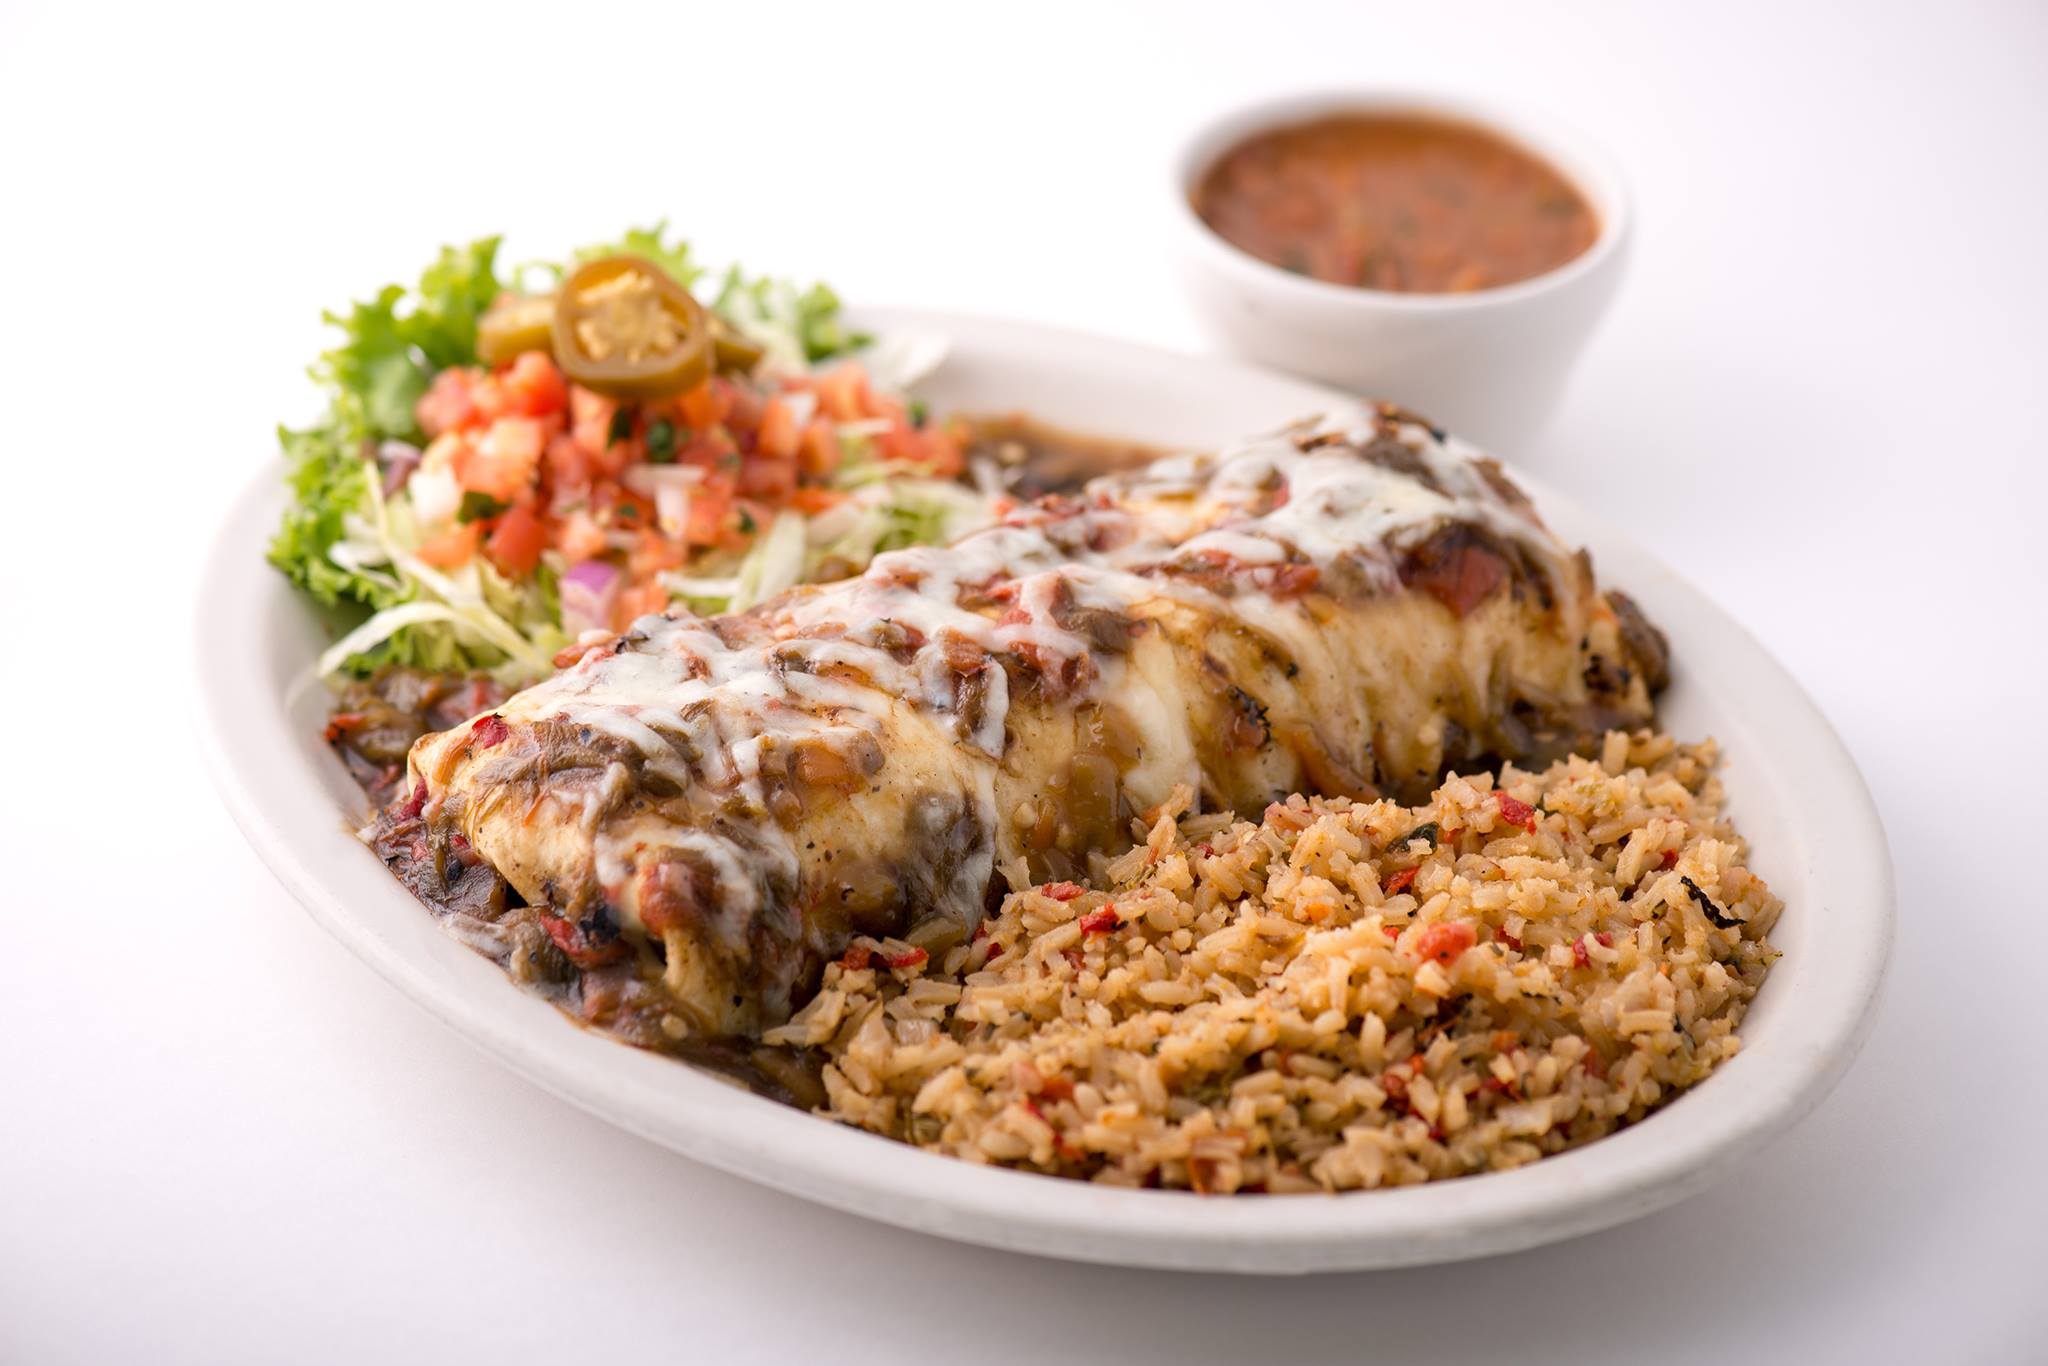 A dish from Chuy's